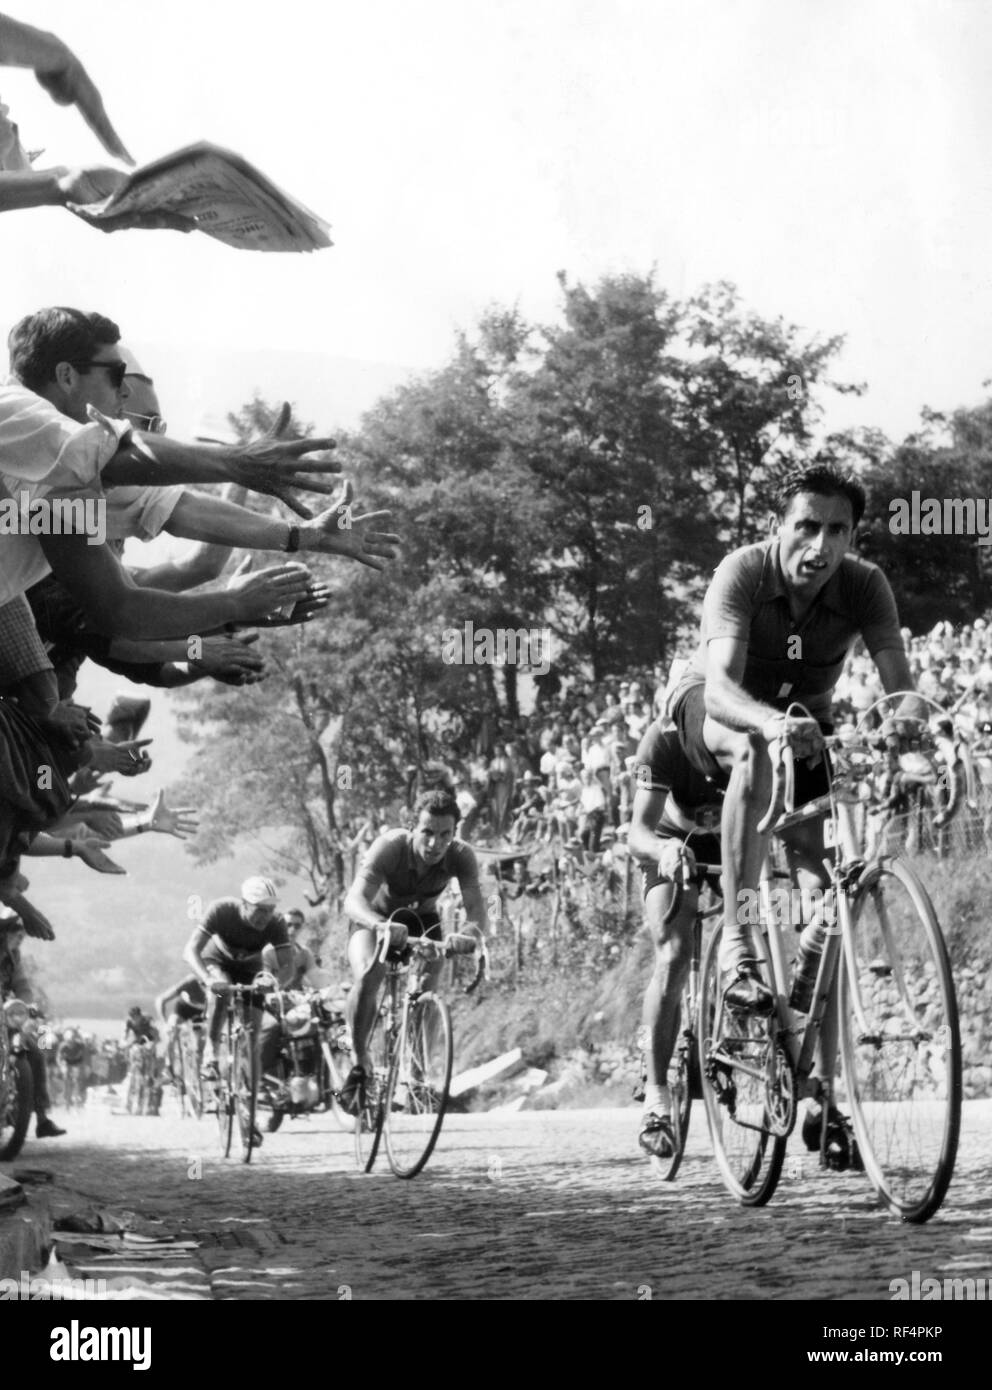 Fausto Coppi, 1953 Banque D'Images